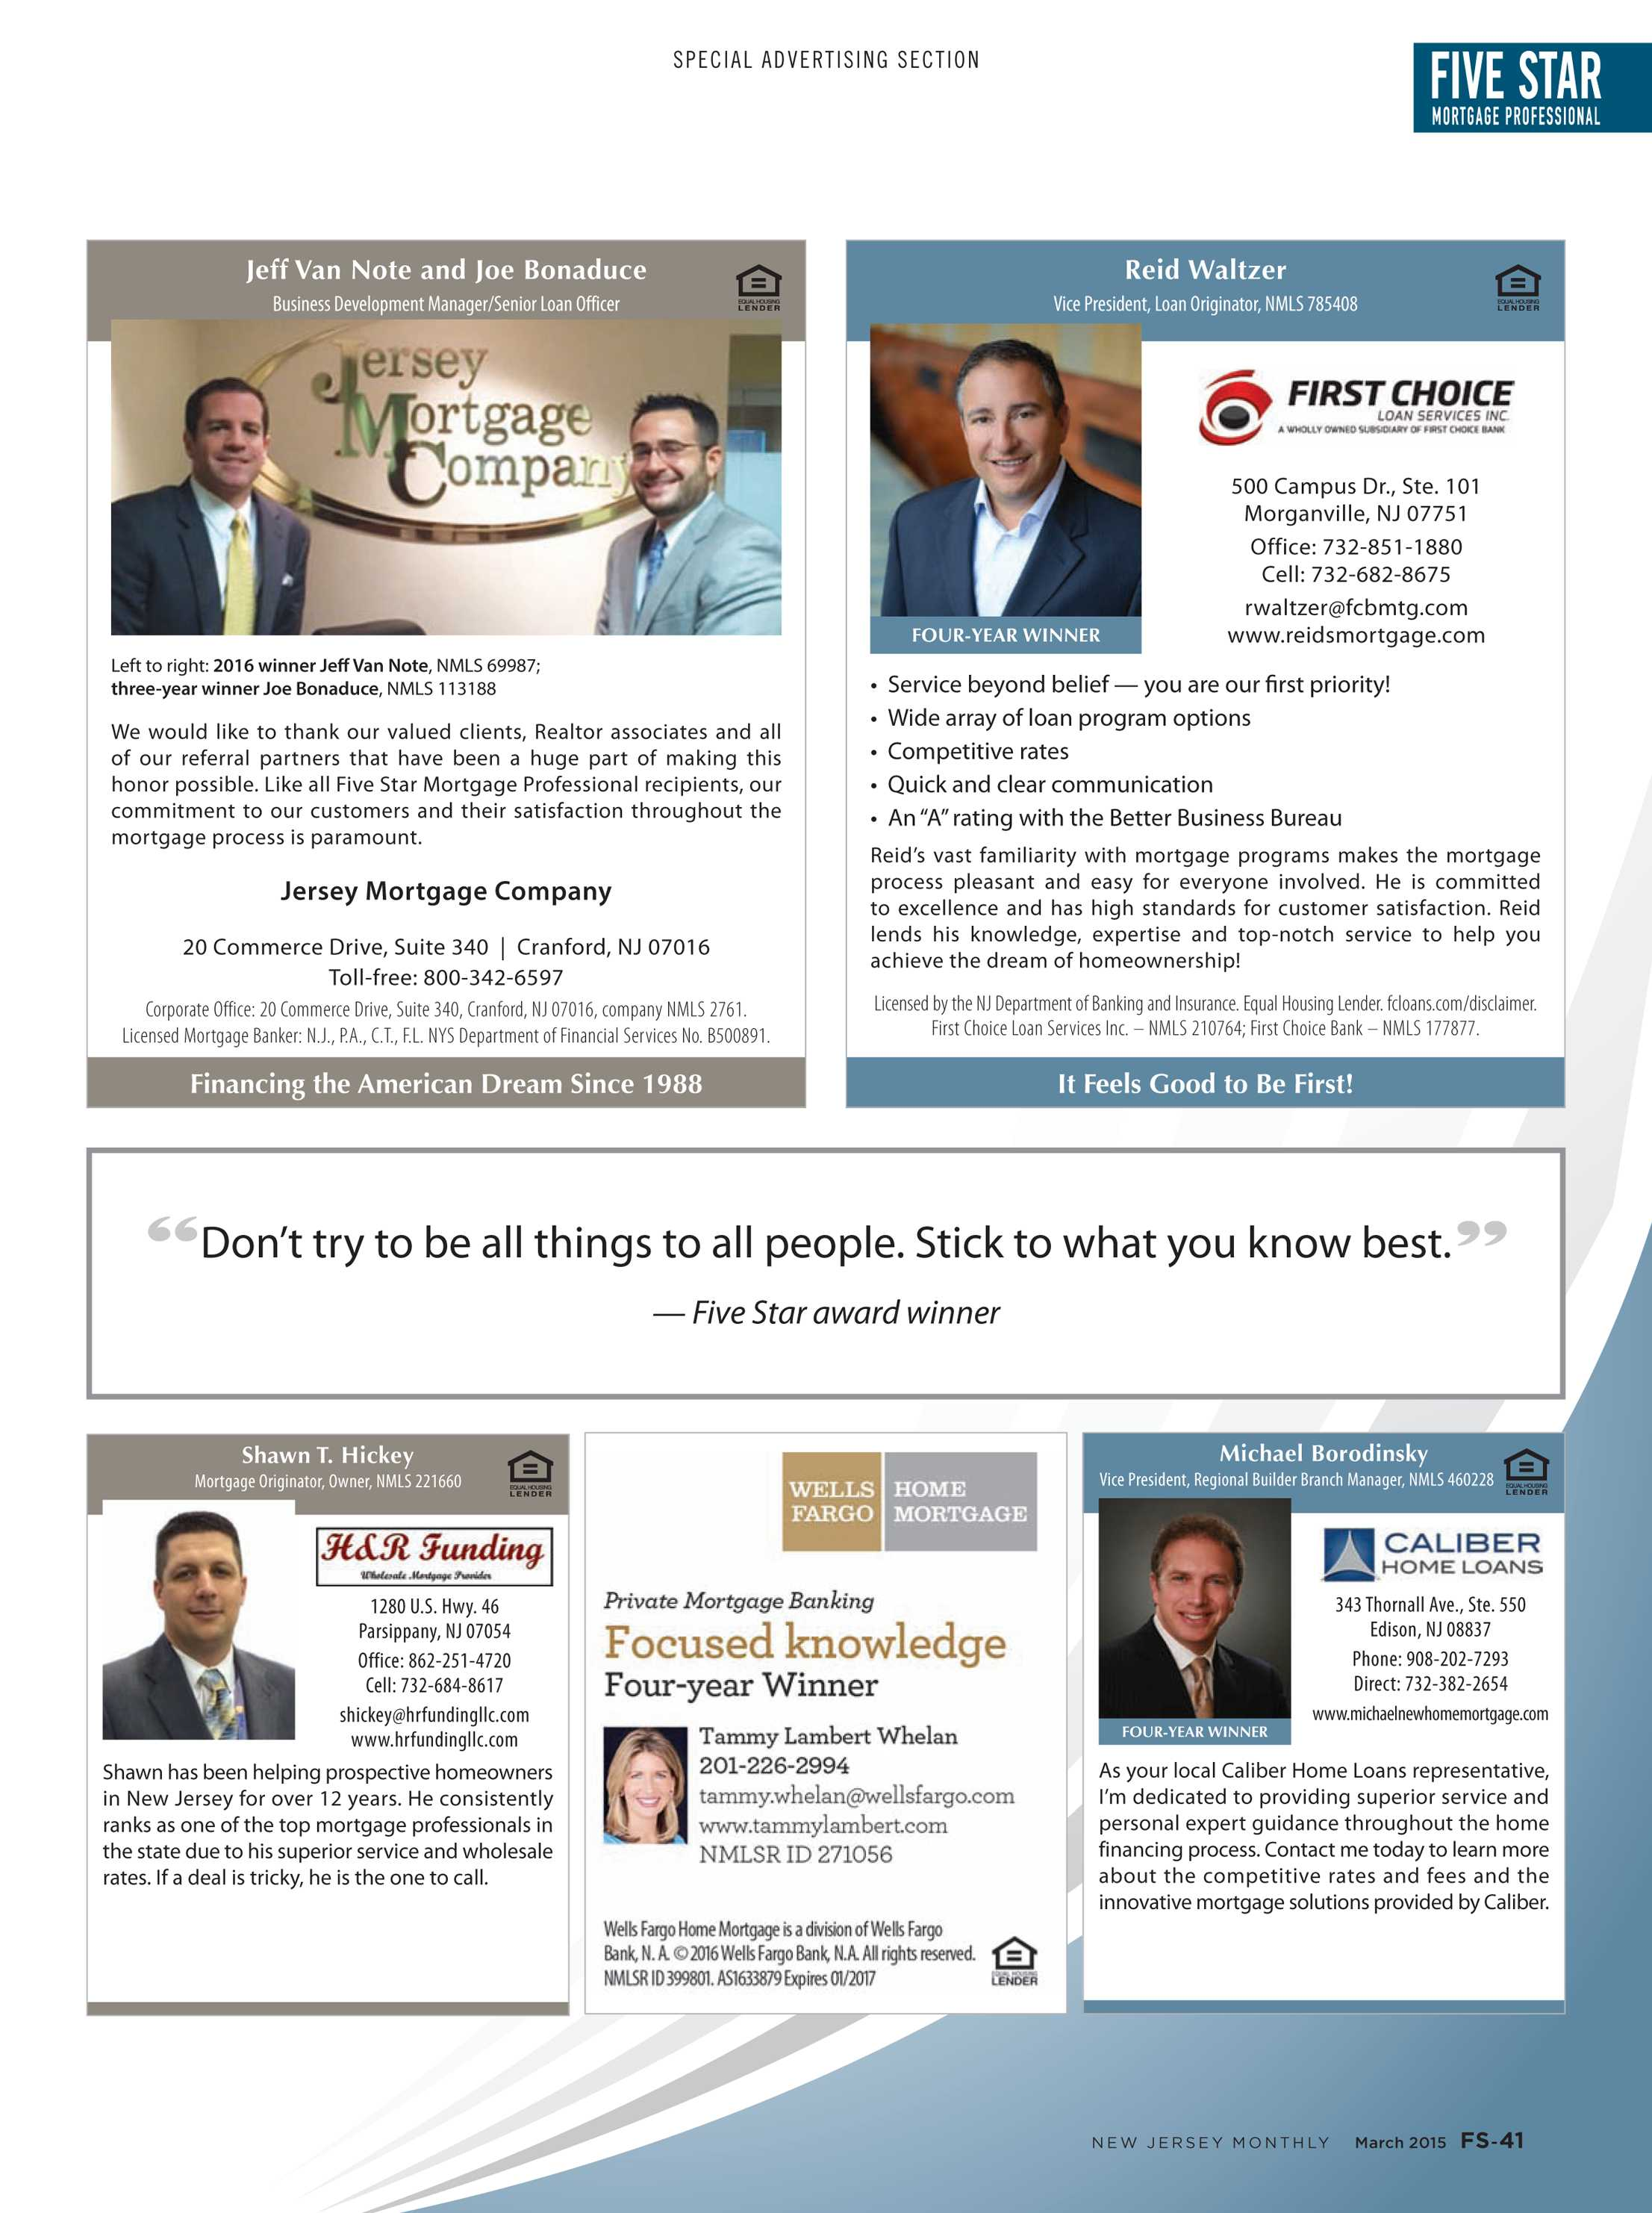 Nj Monthly March 2016 Page Fs 41